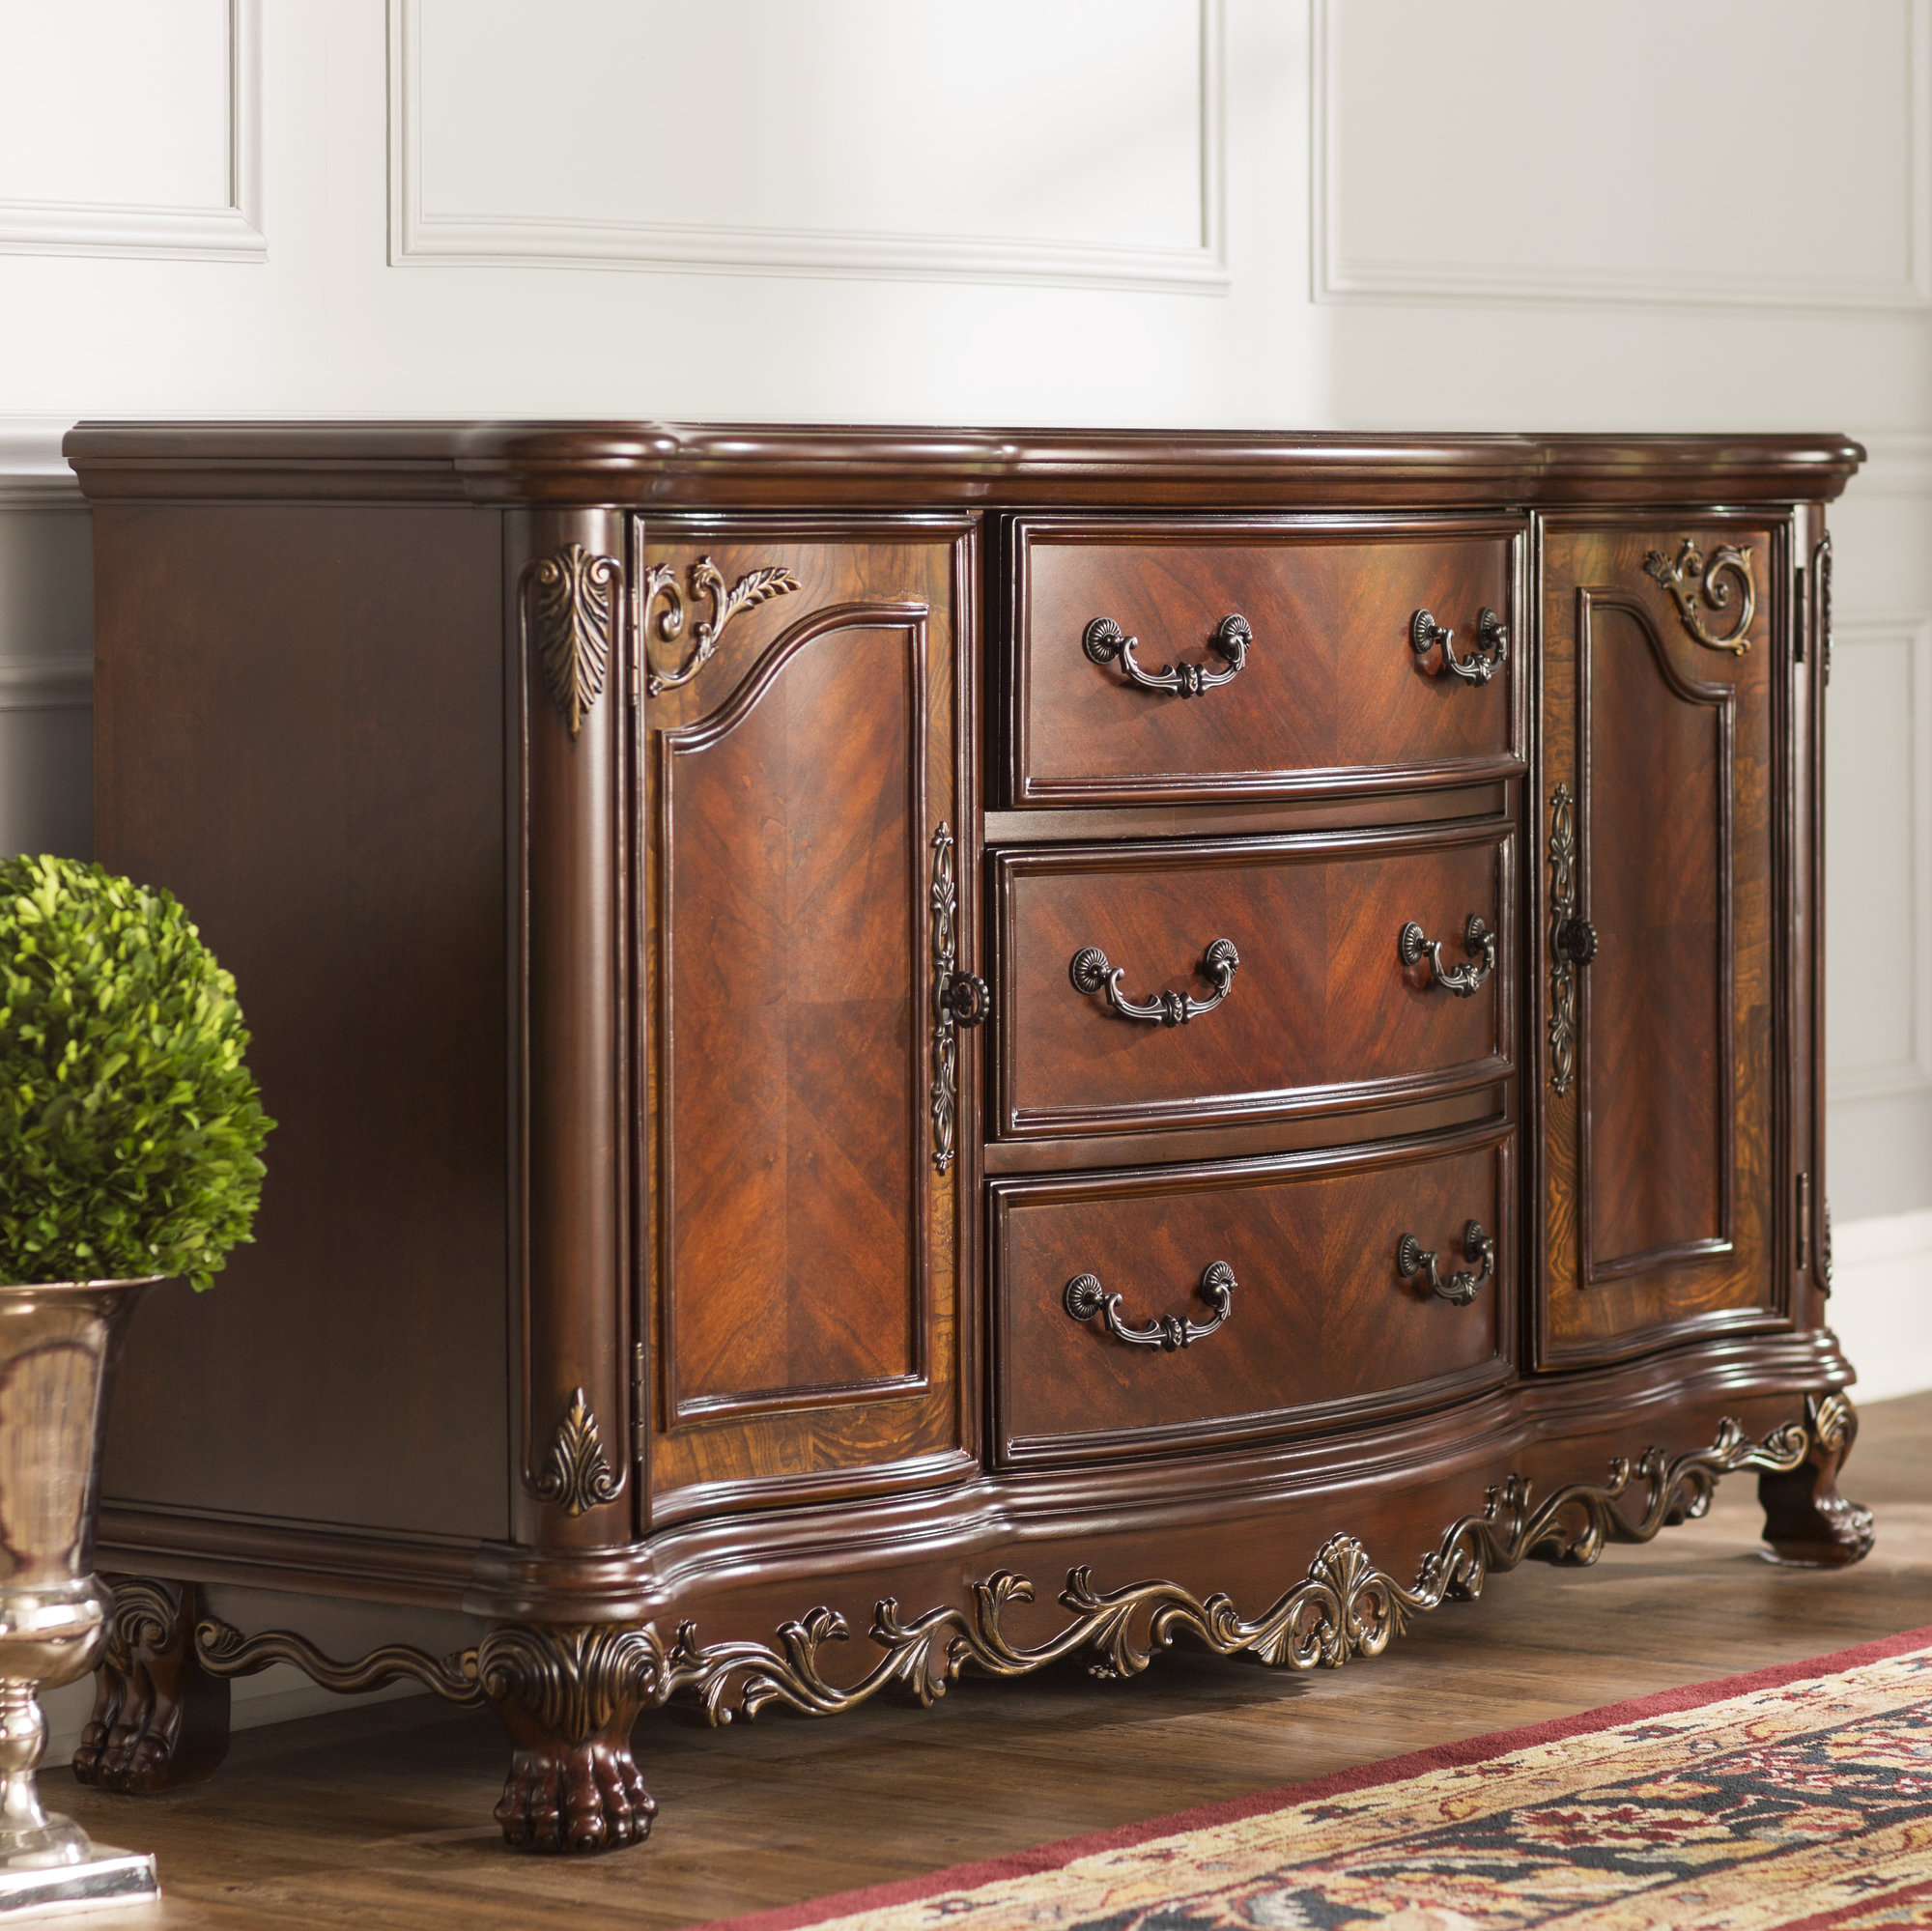 Preferred Details About Astoria Grand Chalus Sideboard With Regard To Hayslett Sideboards (View 13 of 20)